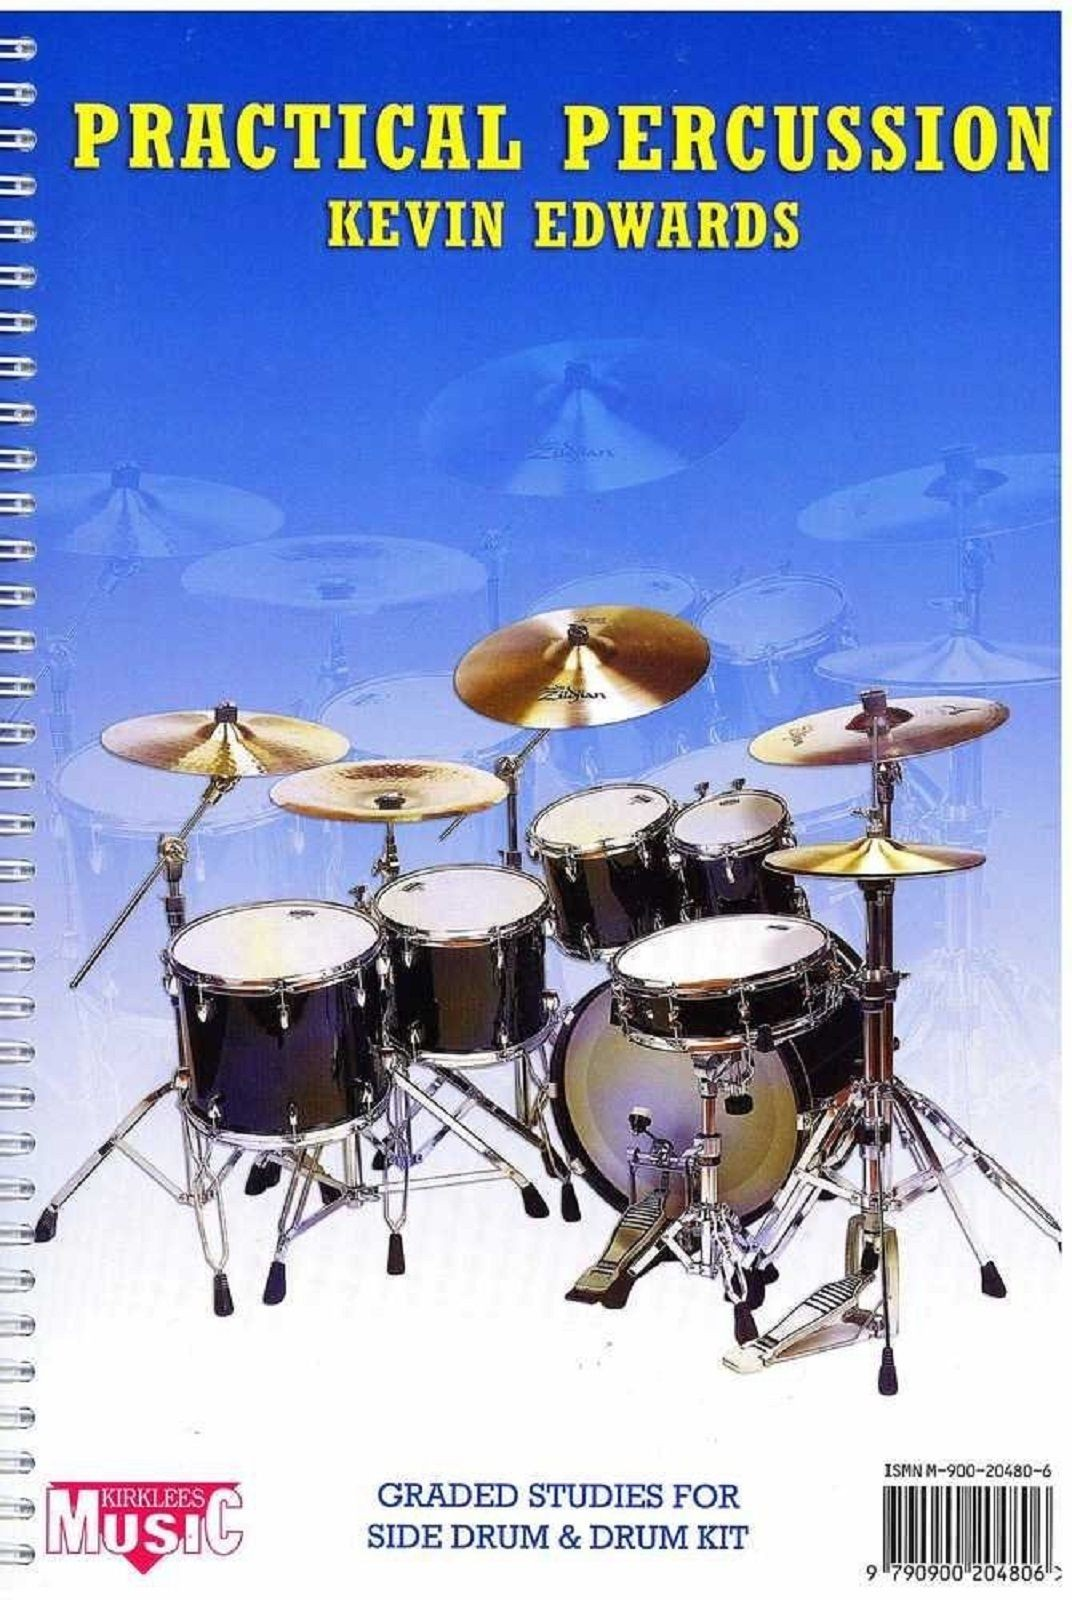 Practical Percussion Kevin Edwards Graded Studies for Side Drum Kit CD Book S113